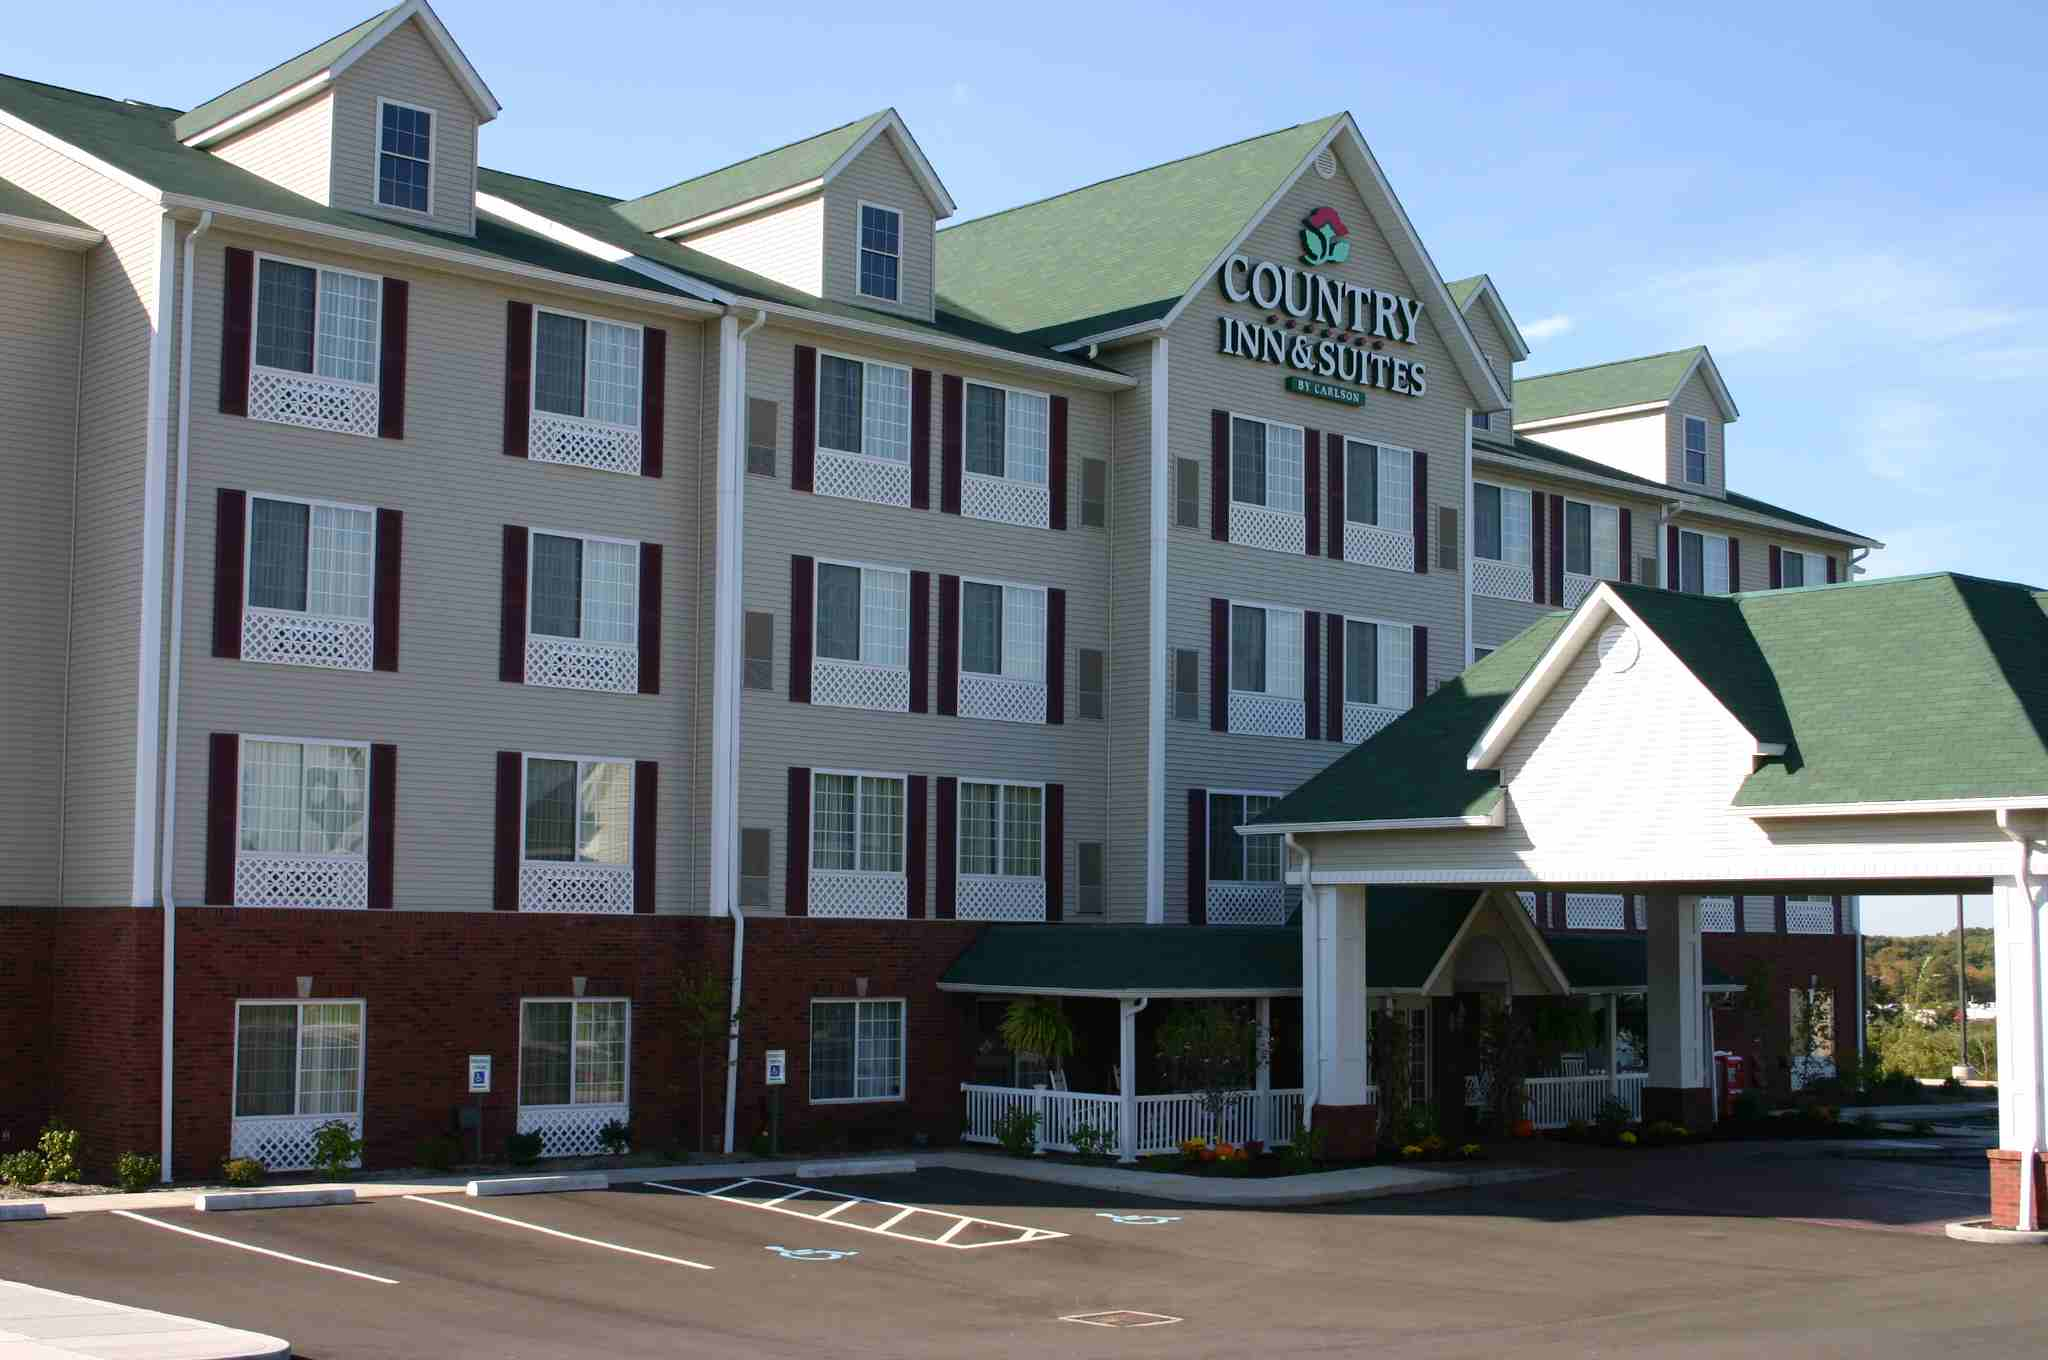 Country Inn & Suites - Youngstown